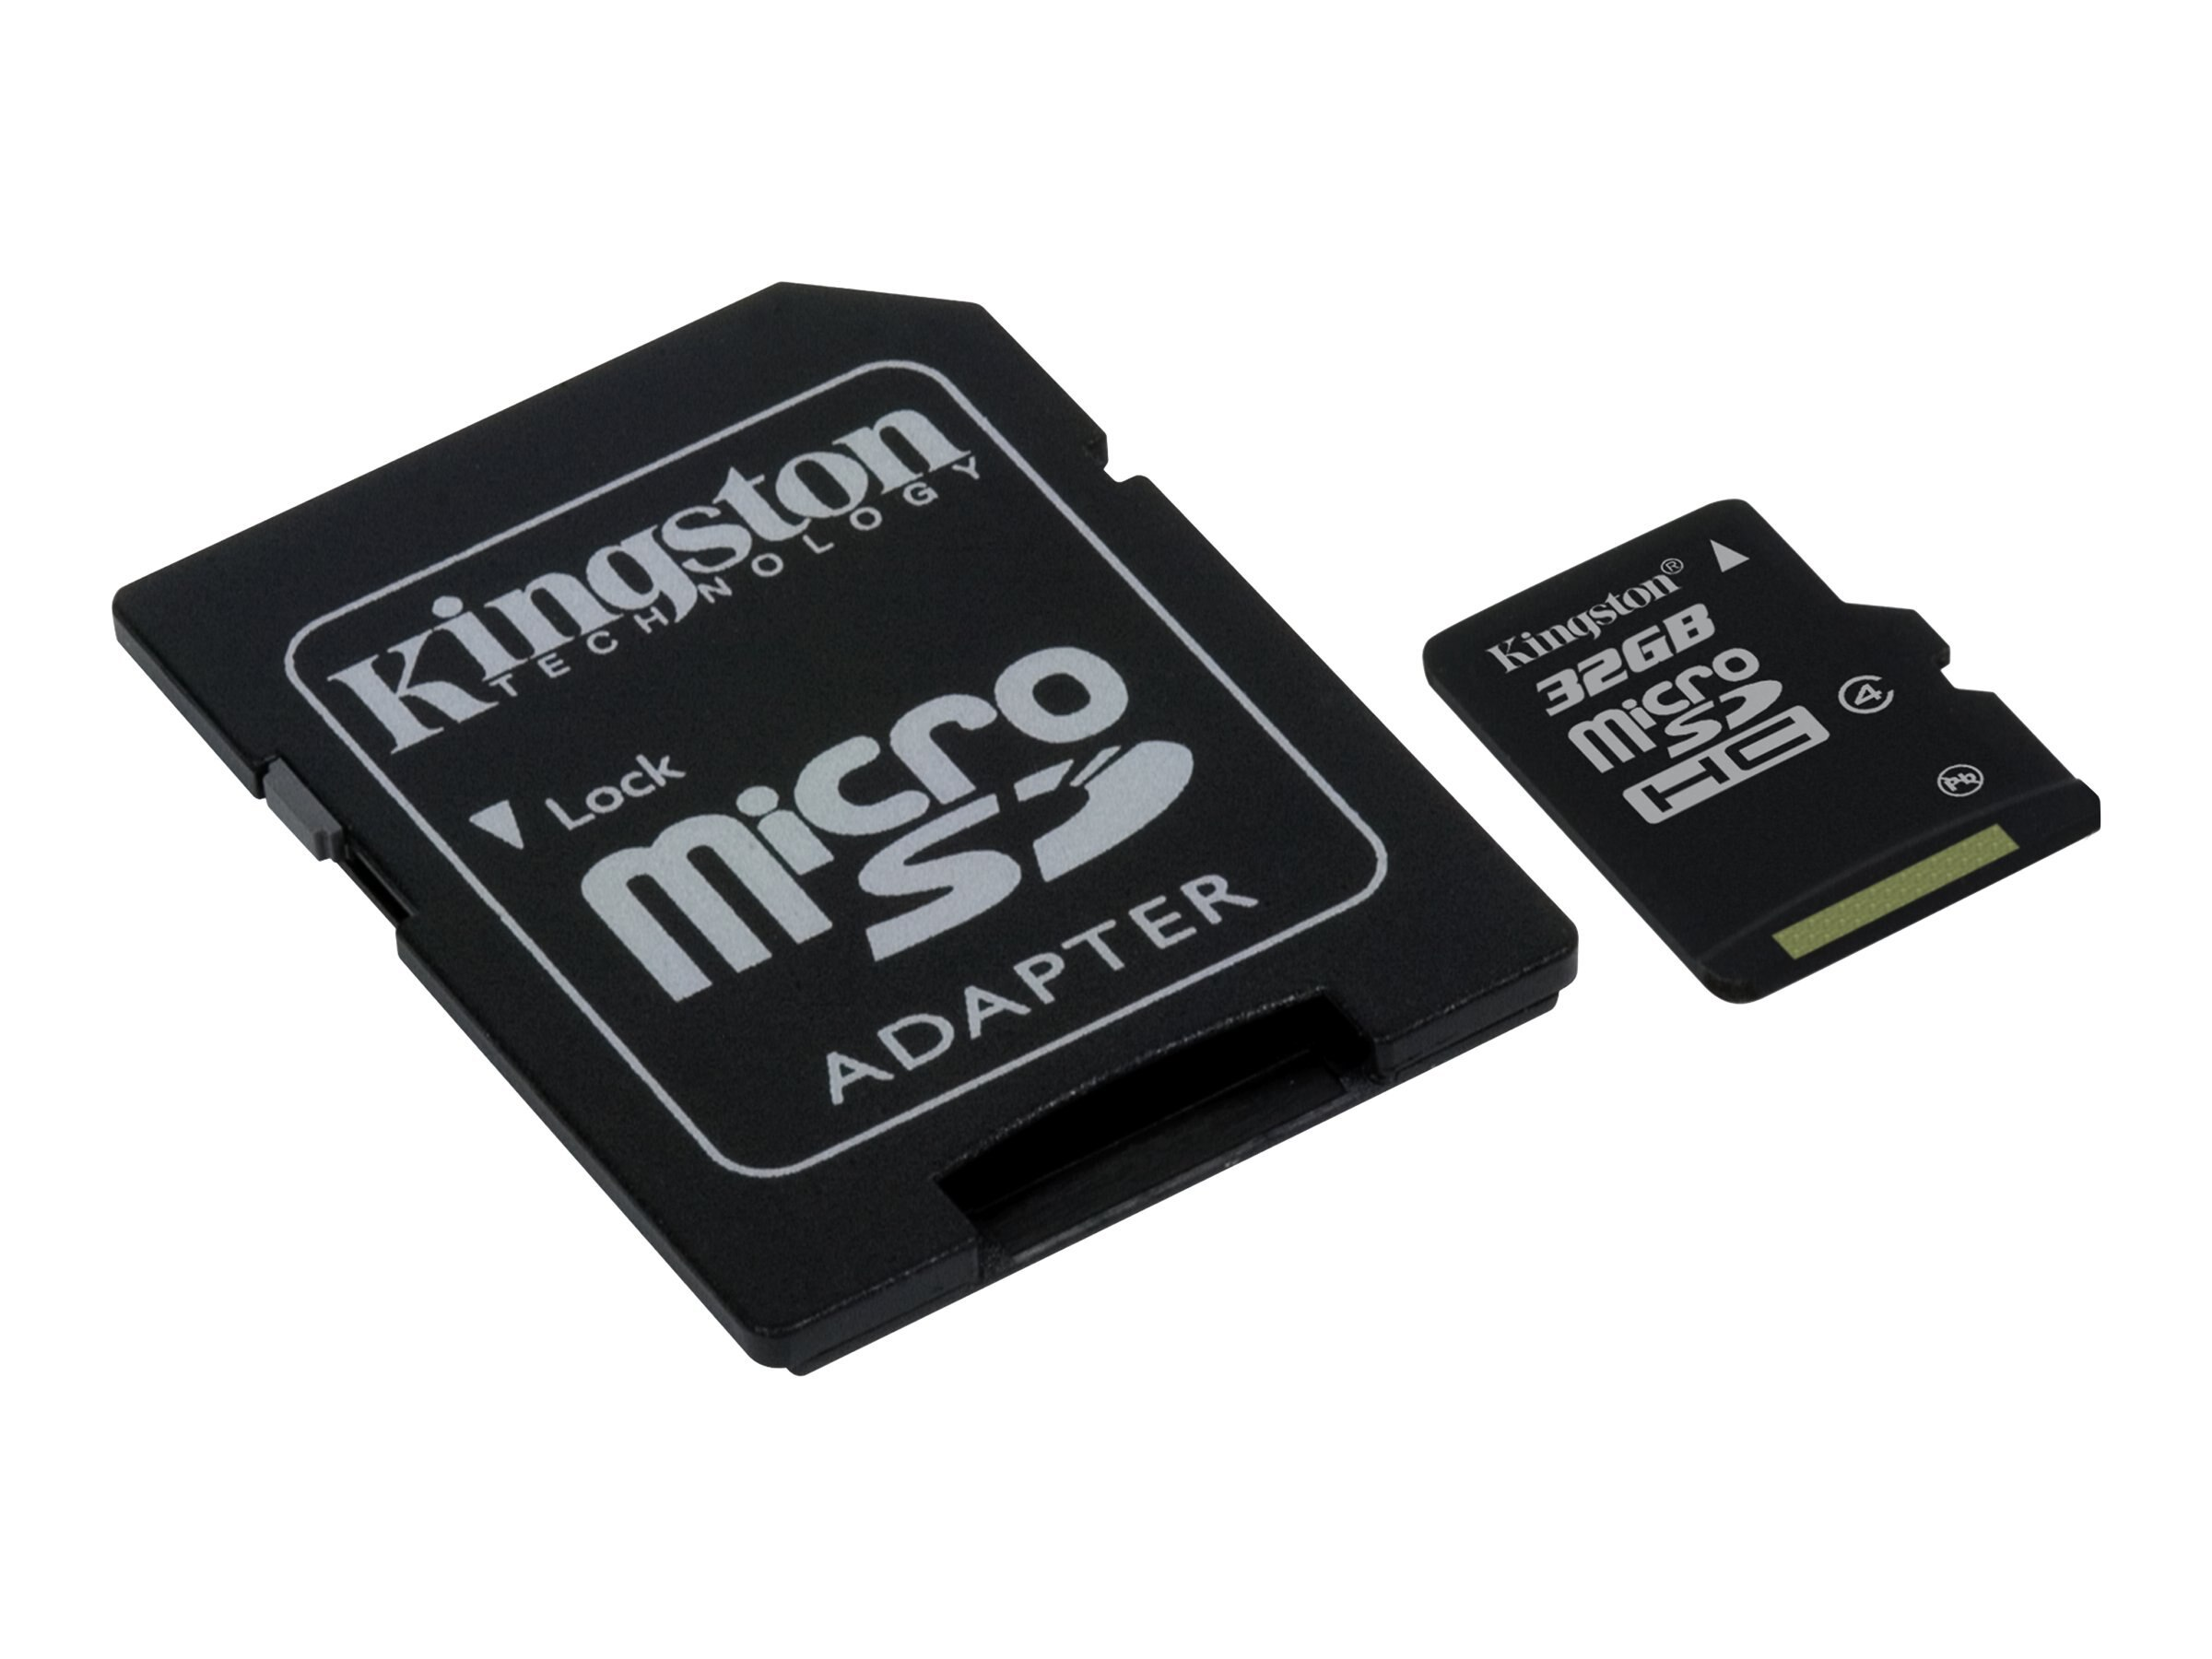 Kingston 32GB microSDHC Flash Memory Card, Class 4, SDC4/32GBCP, 14711807, Memory - Flash